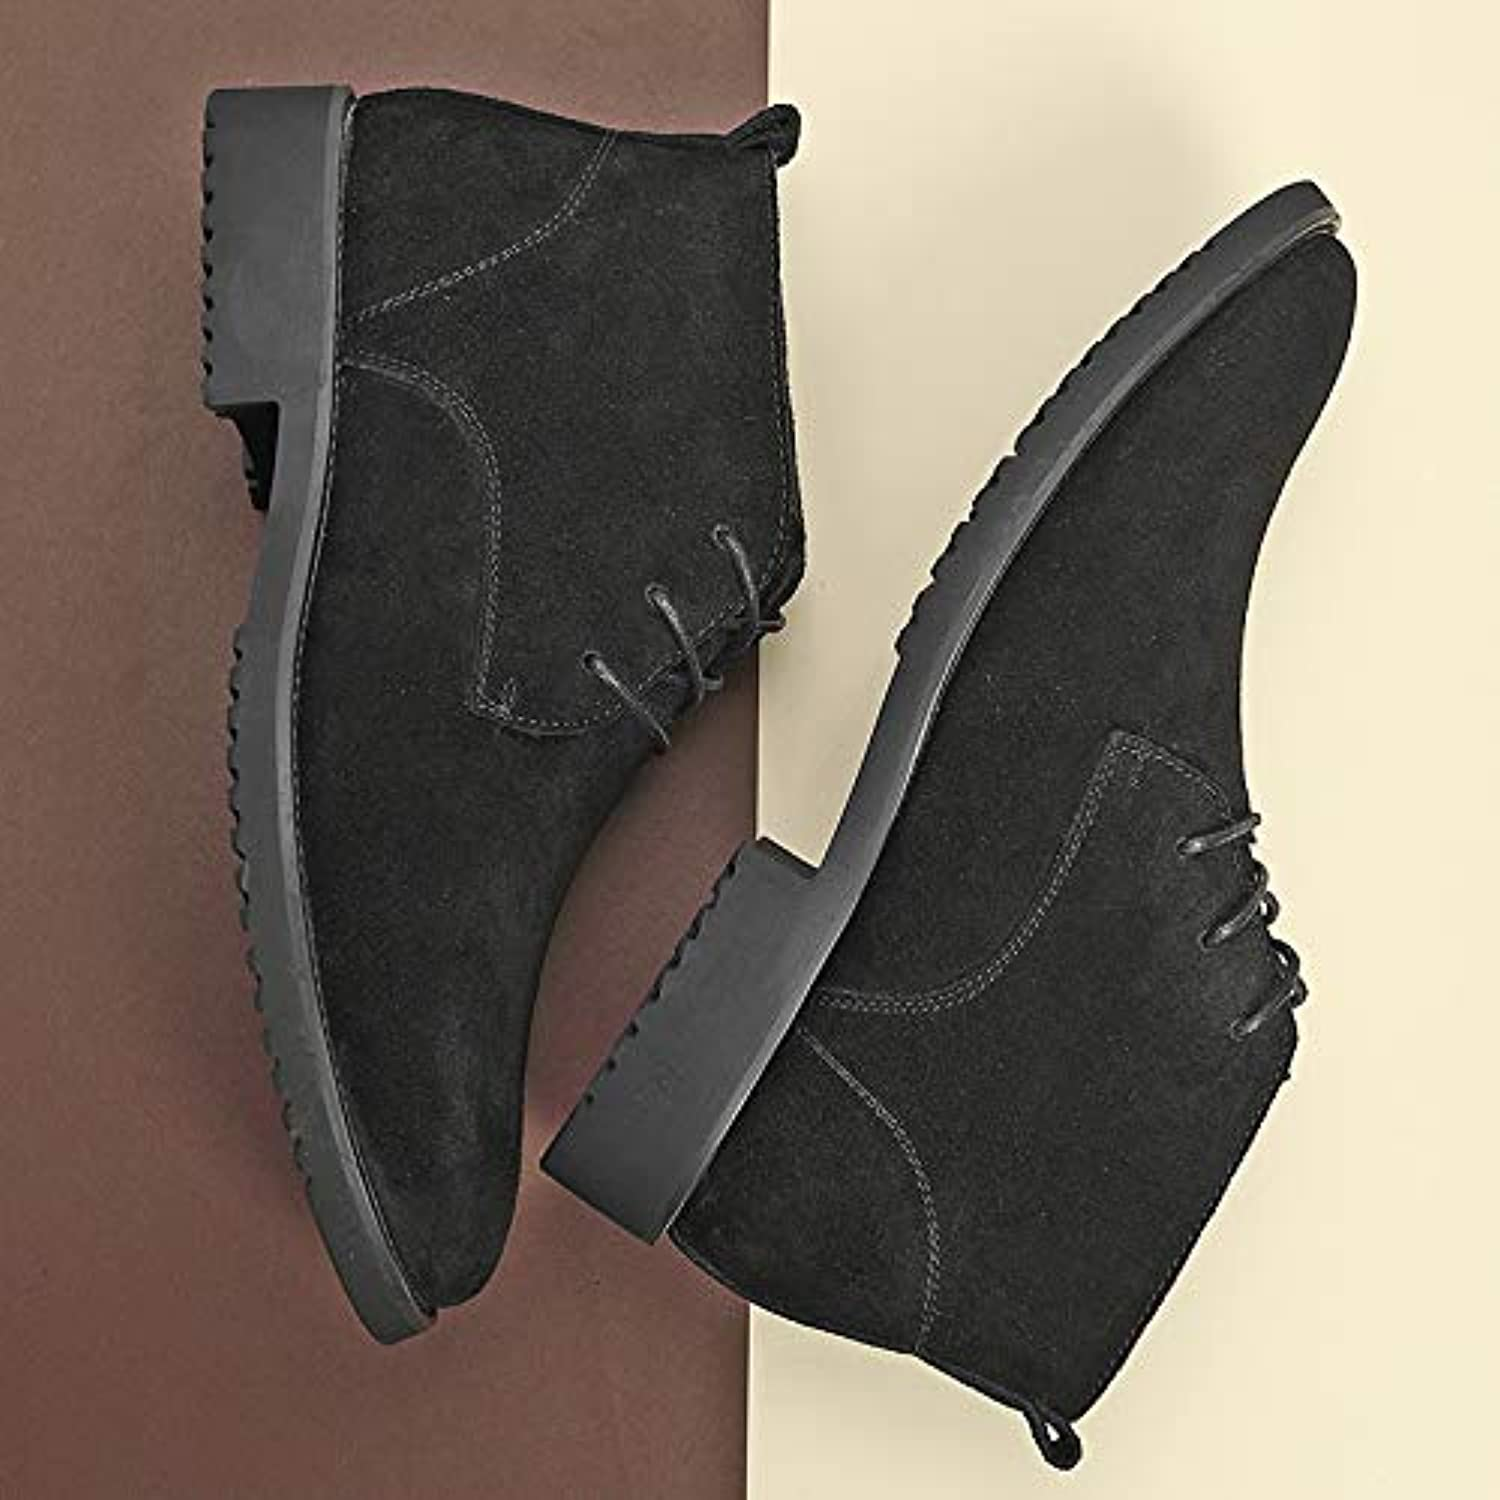 LOVDRAM Boots Men's Autumn And Winter Martin Boots Men'S High shoes Wild Youth Sandals